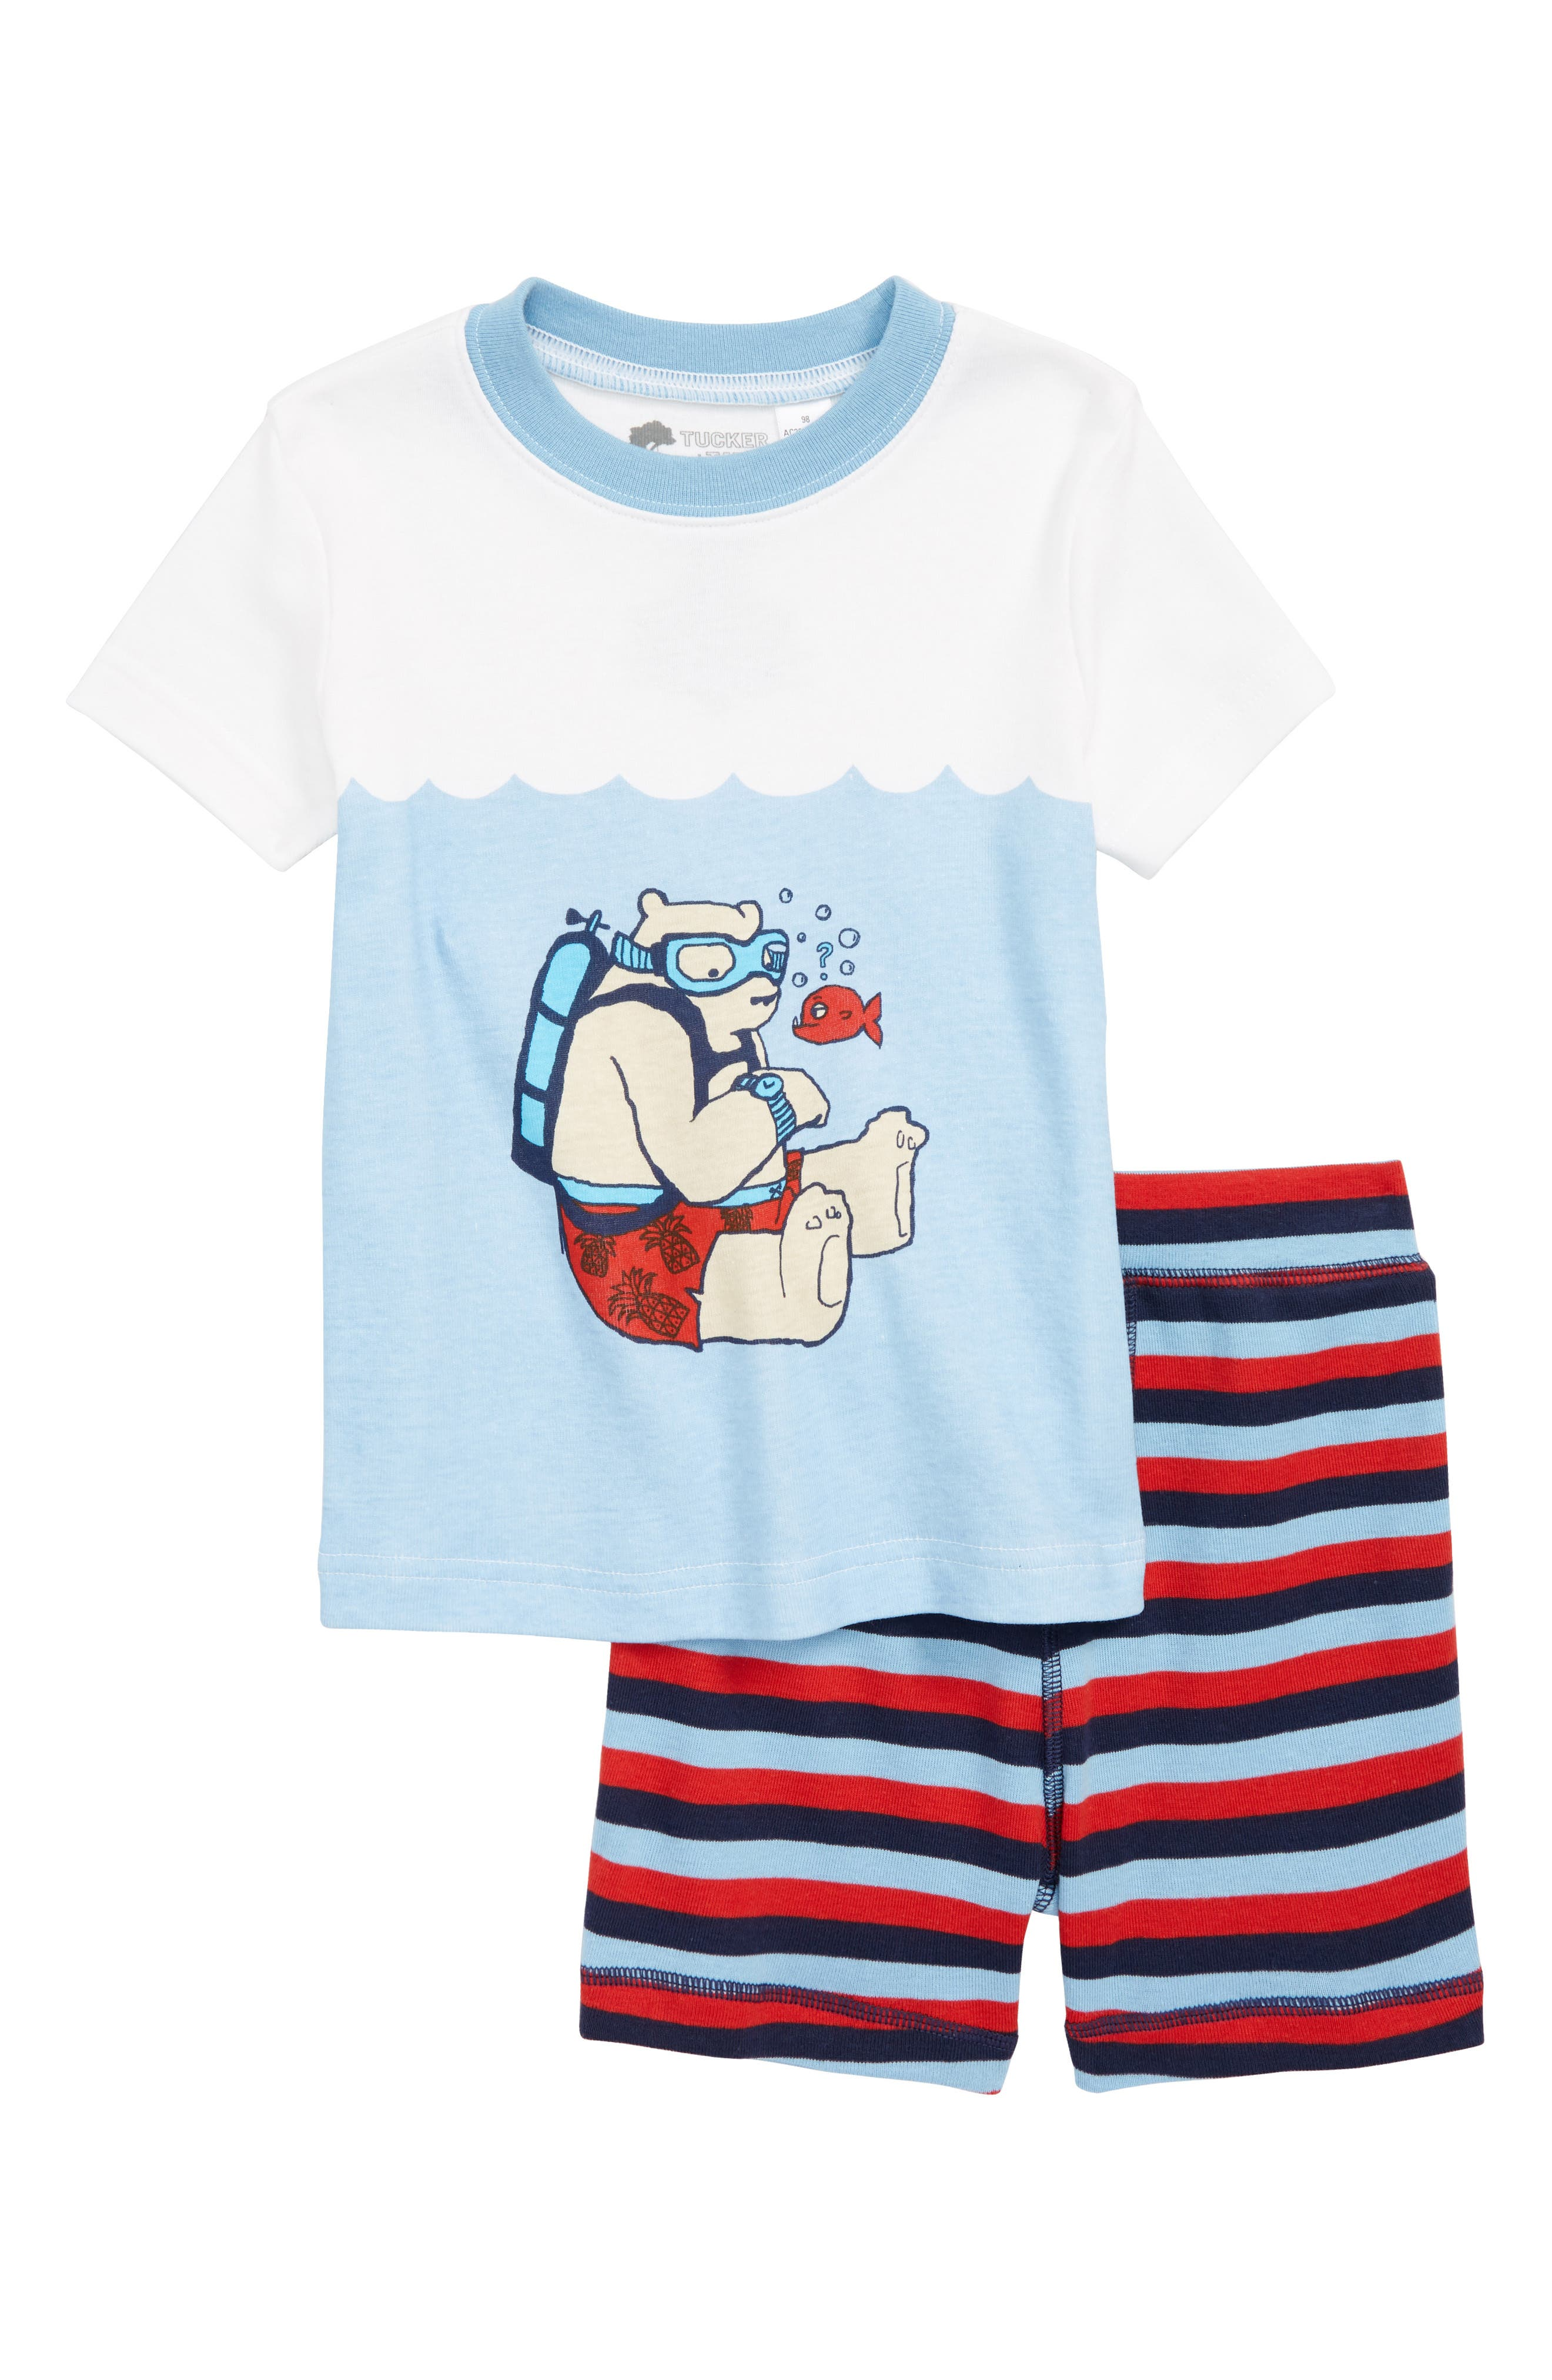 Two-Piece Fitted Pajamas,                             Main thumbnail 1, color,                             Blue Dusk Underwater Bear